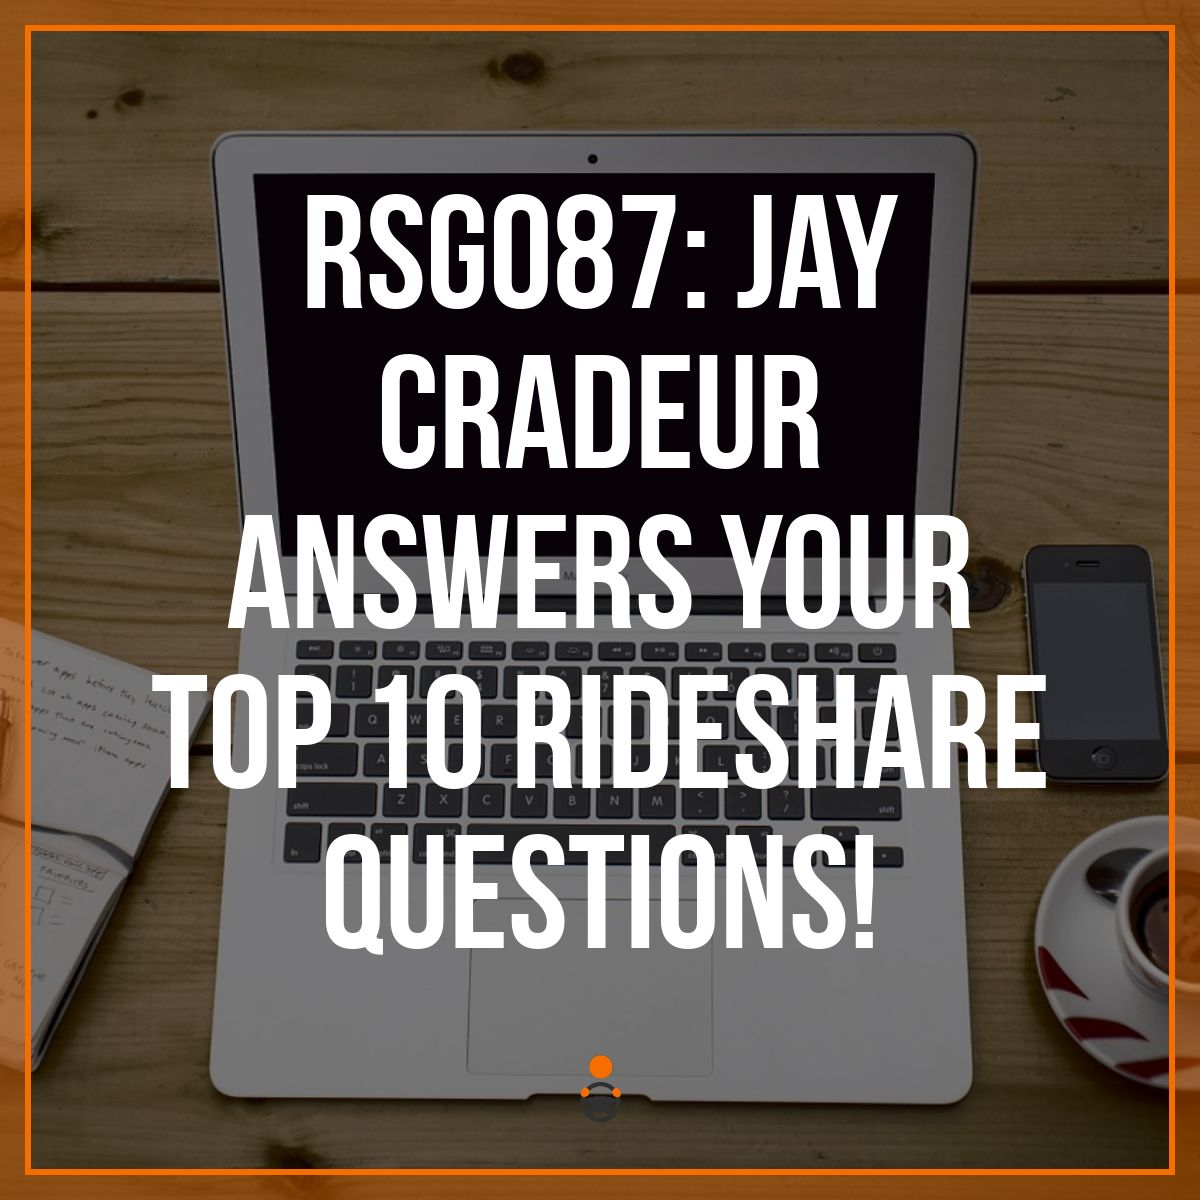 RSG087: Jay Cradeur Answers YOUR Top 10 Rideshare Questions!